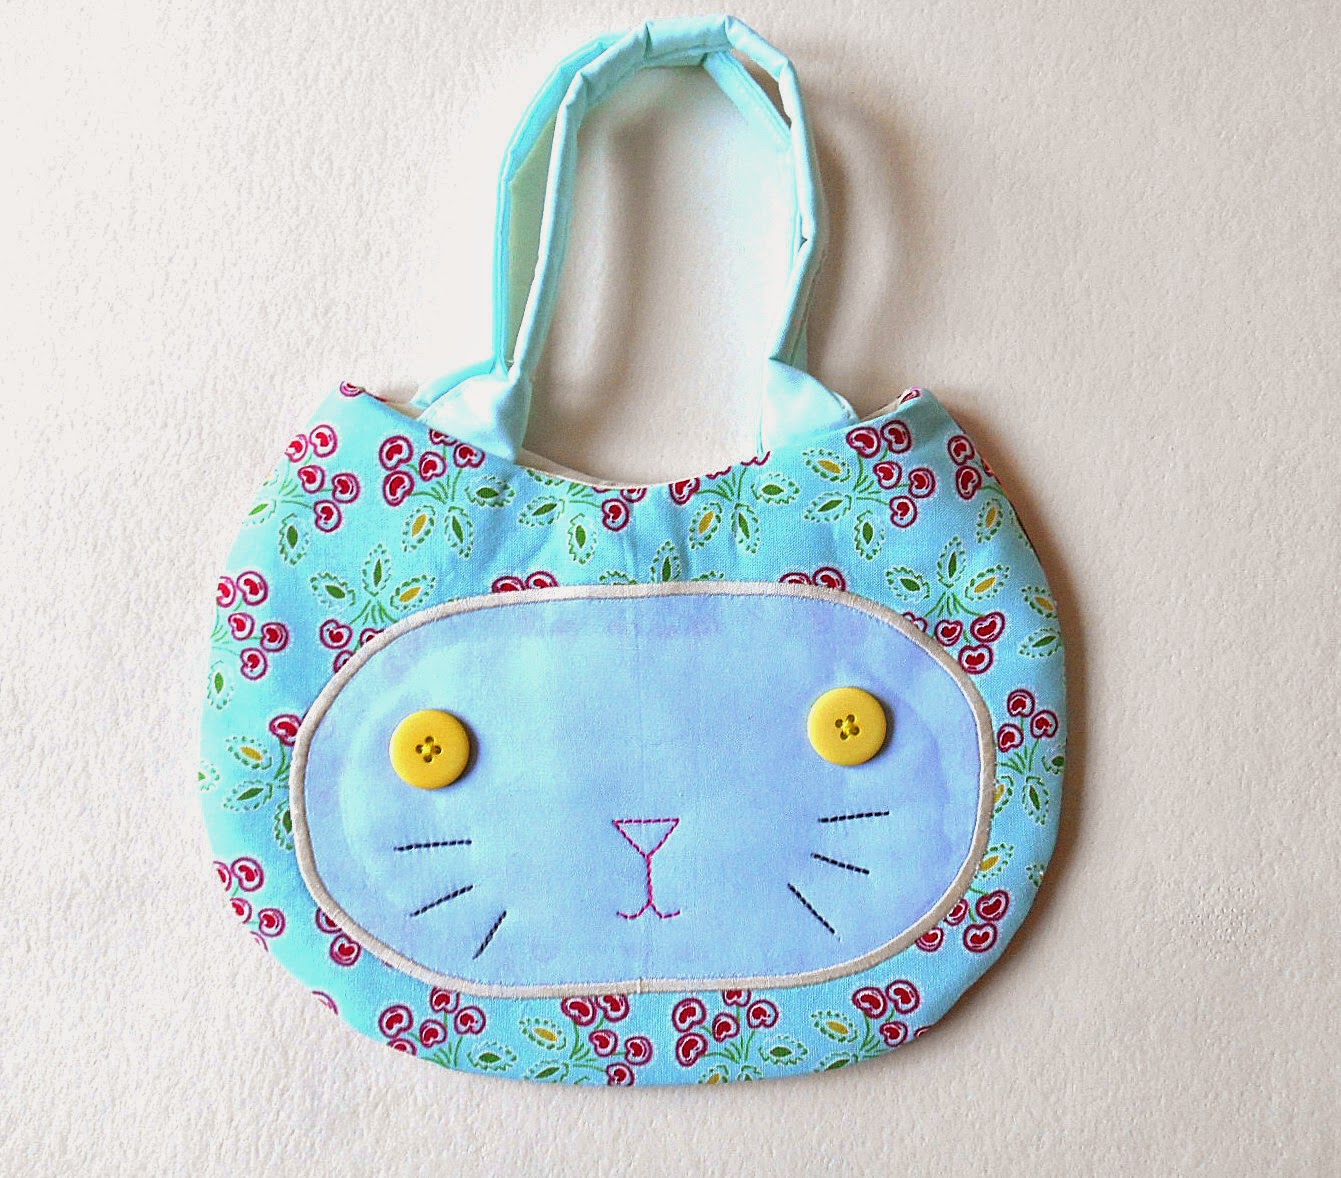 aqua kitten face purse